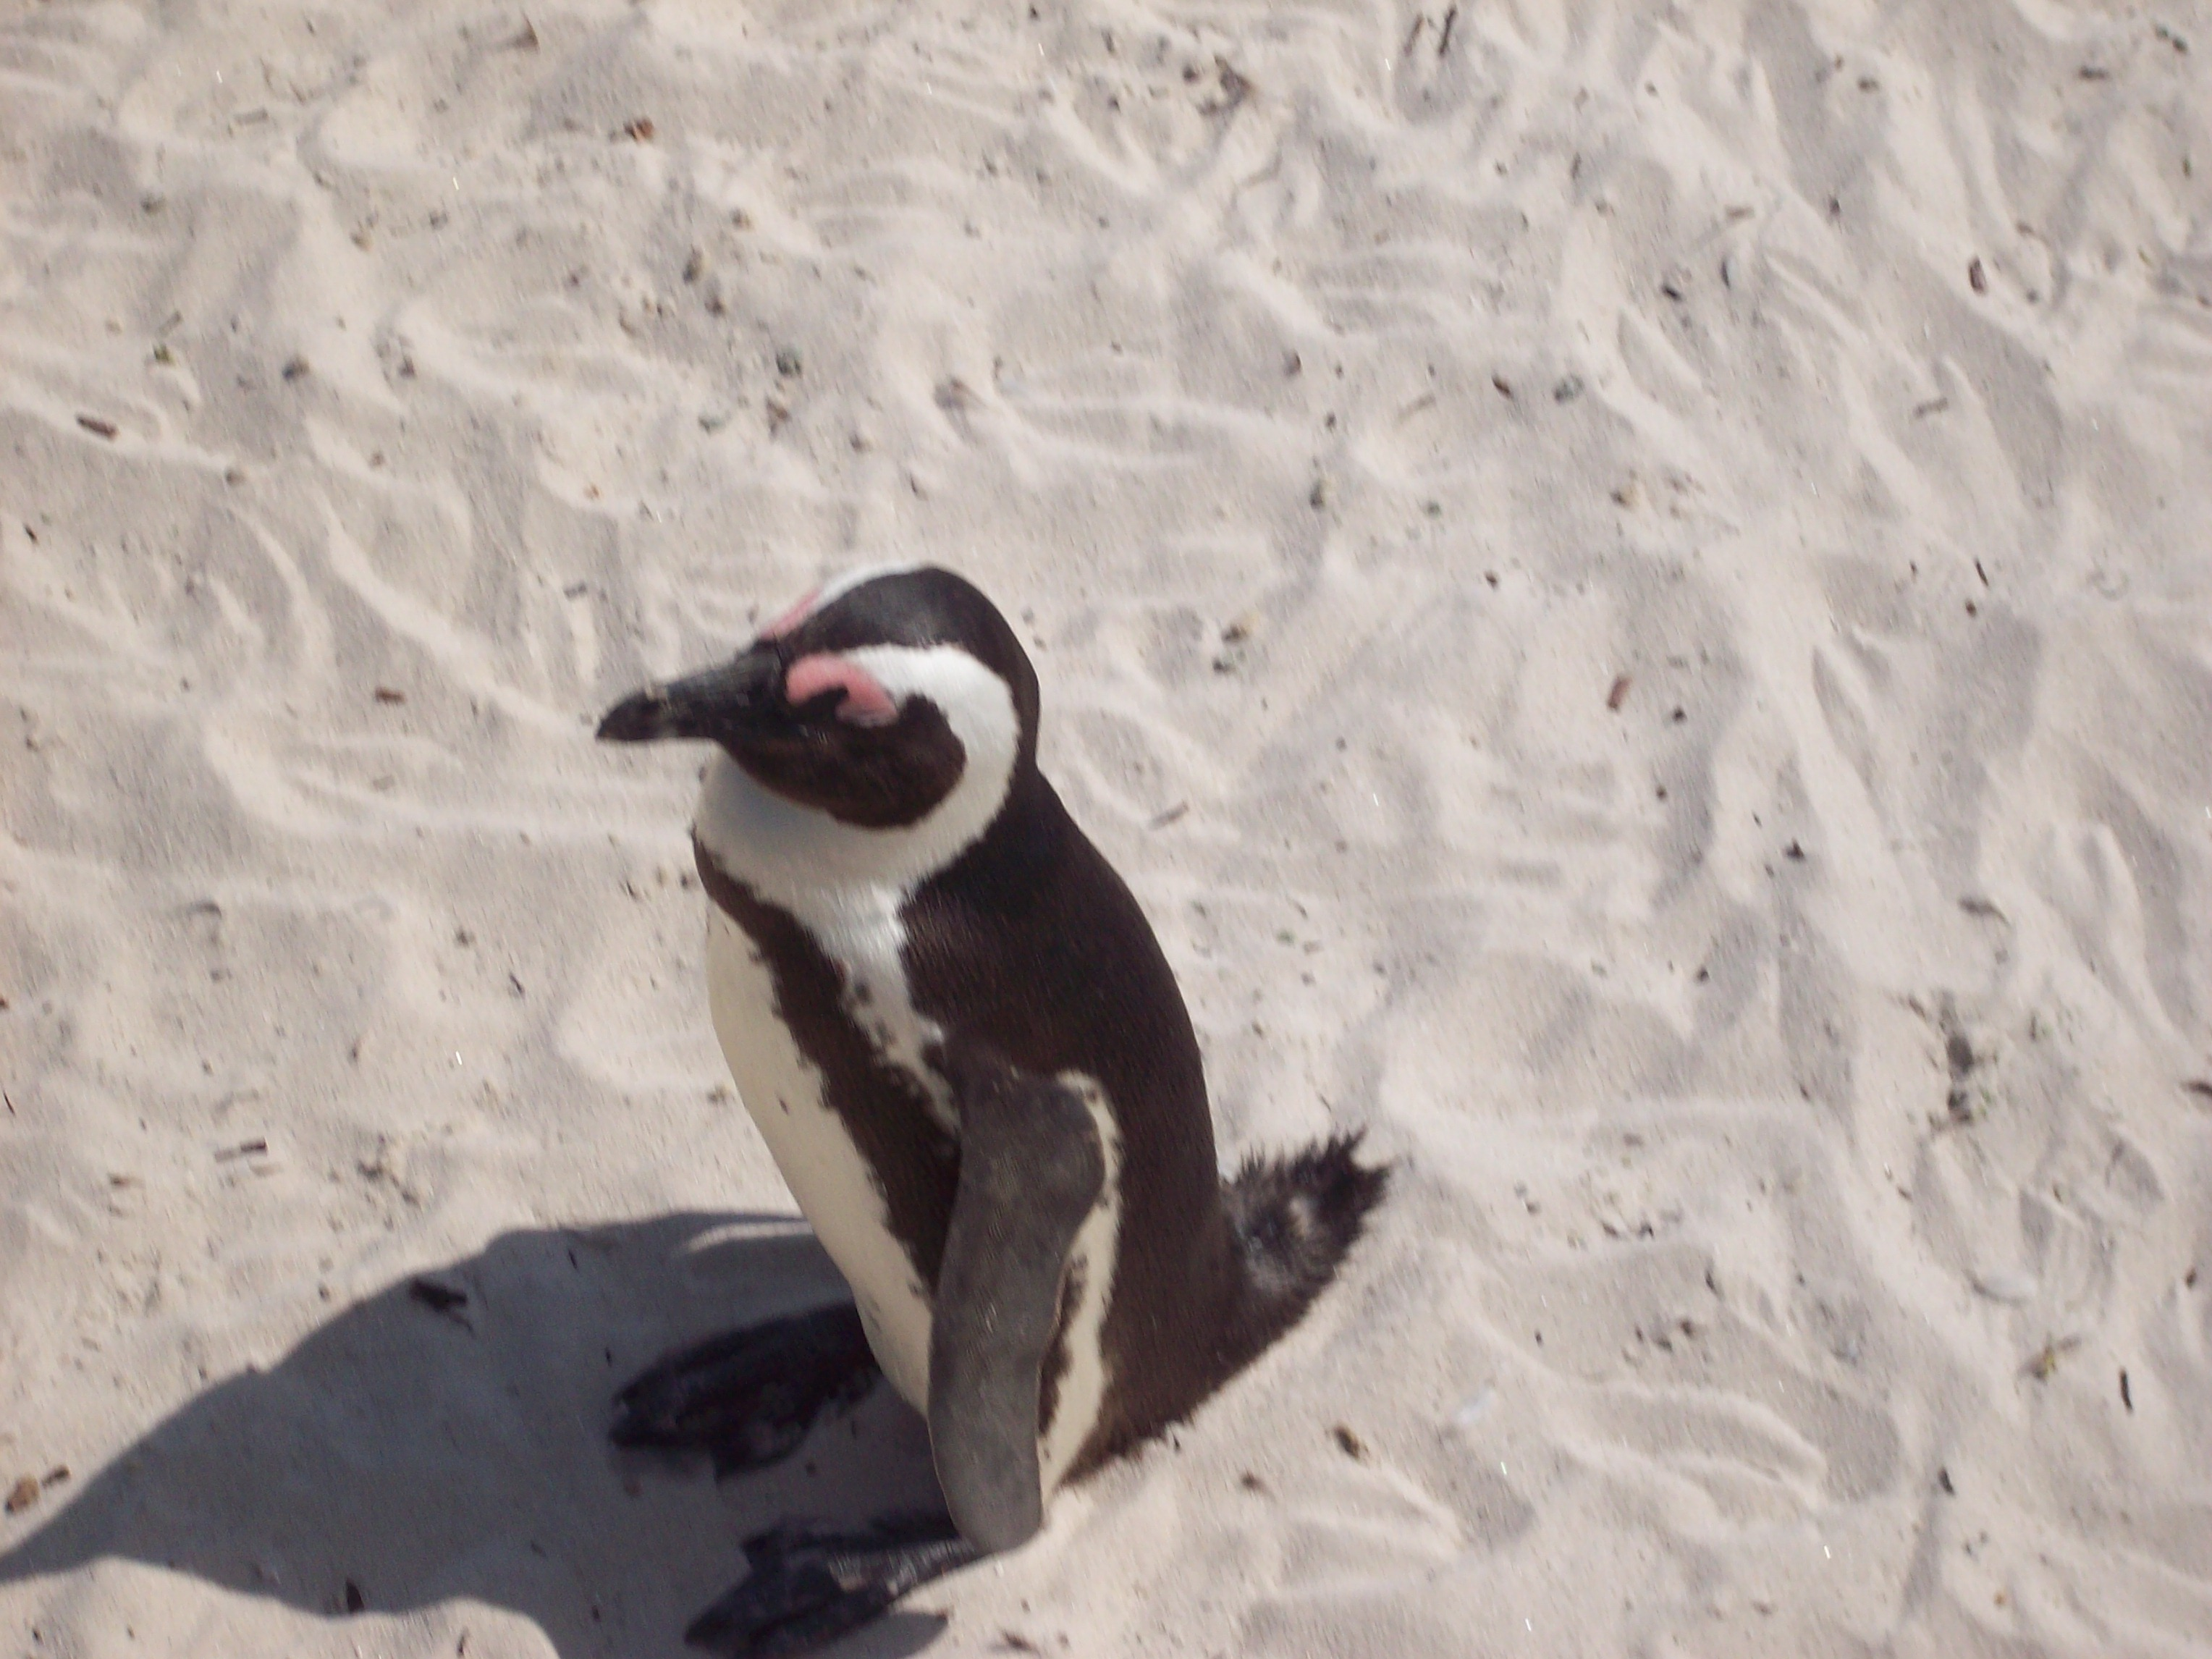 Who knew there were penguins in South Africa?